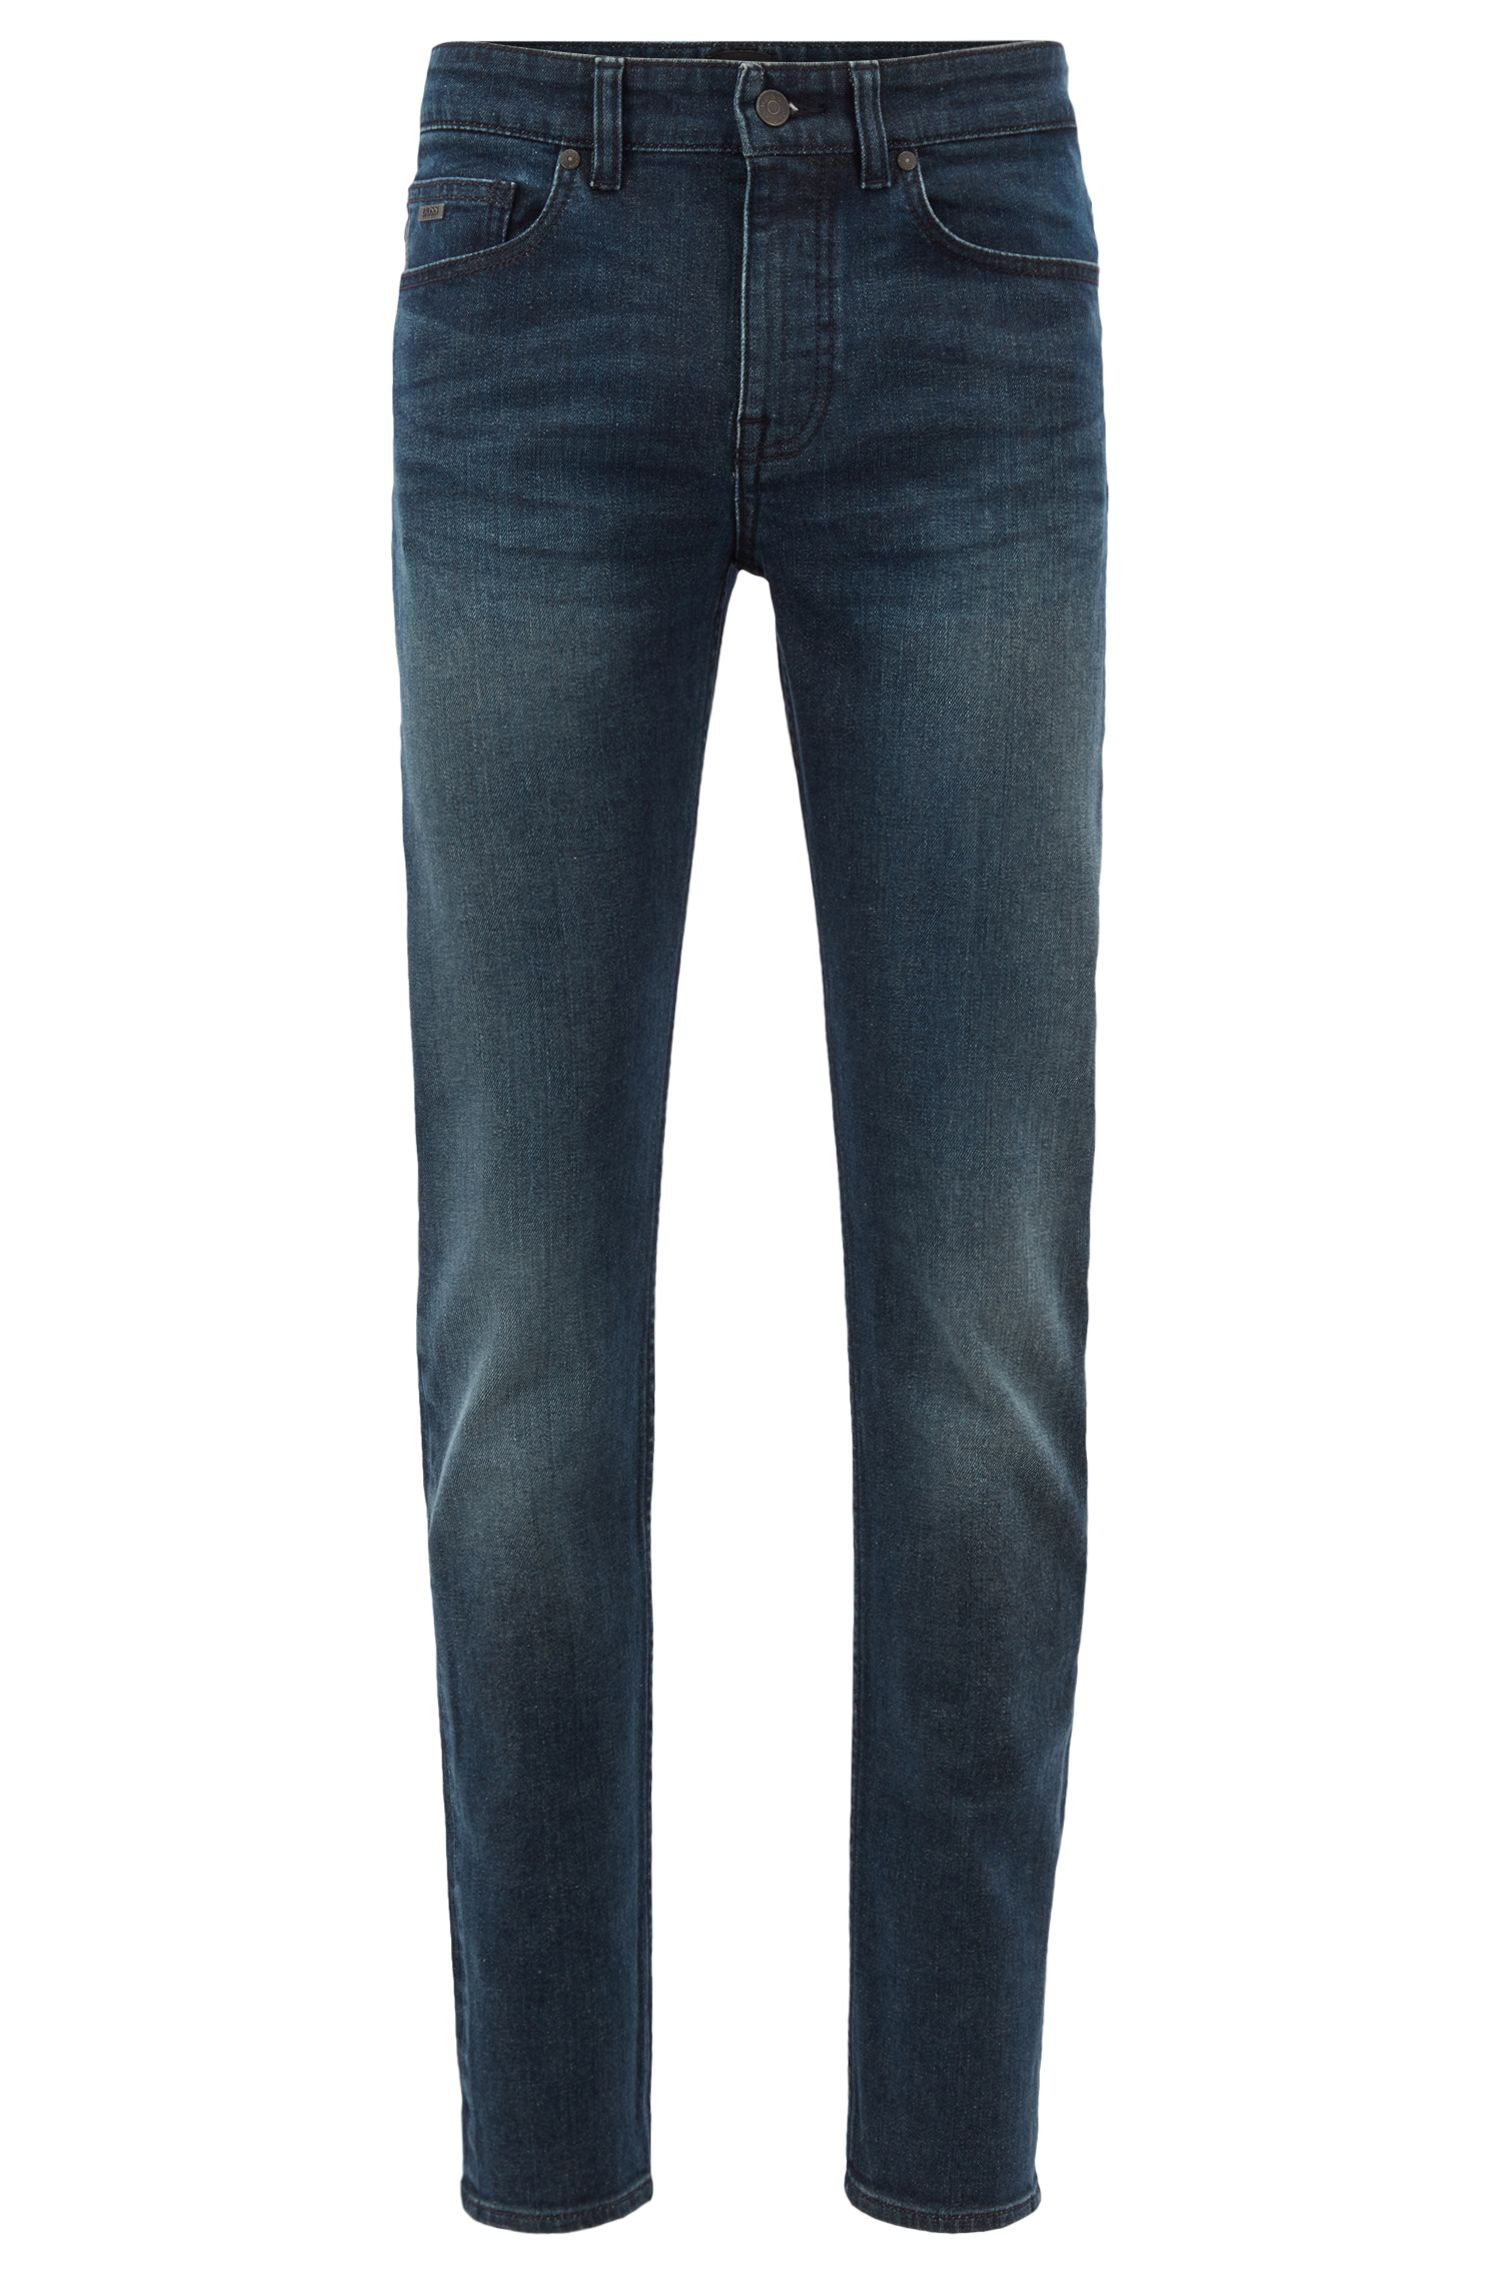 Jean Slim Fit en denim stretch confortable à la finition green cast